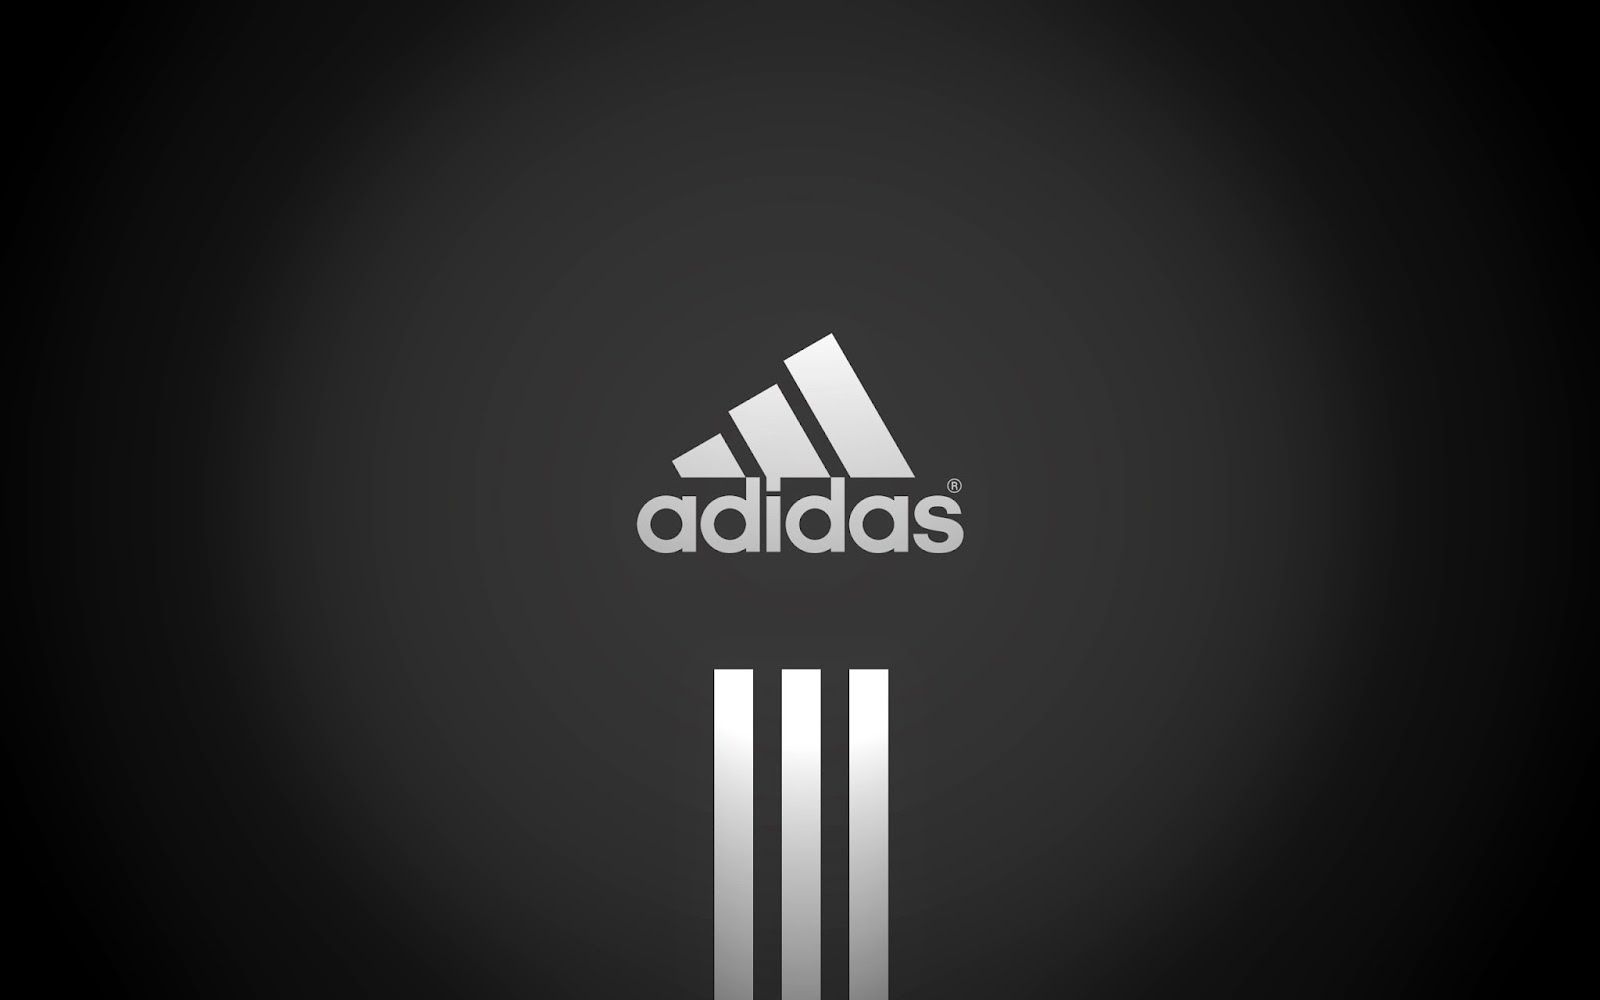 adidas logo sticker for car Adidou 1600x1000